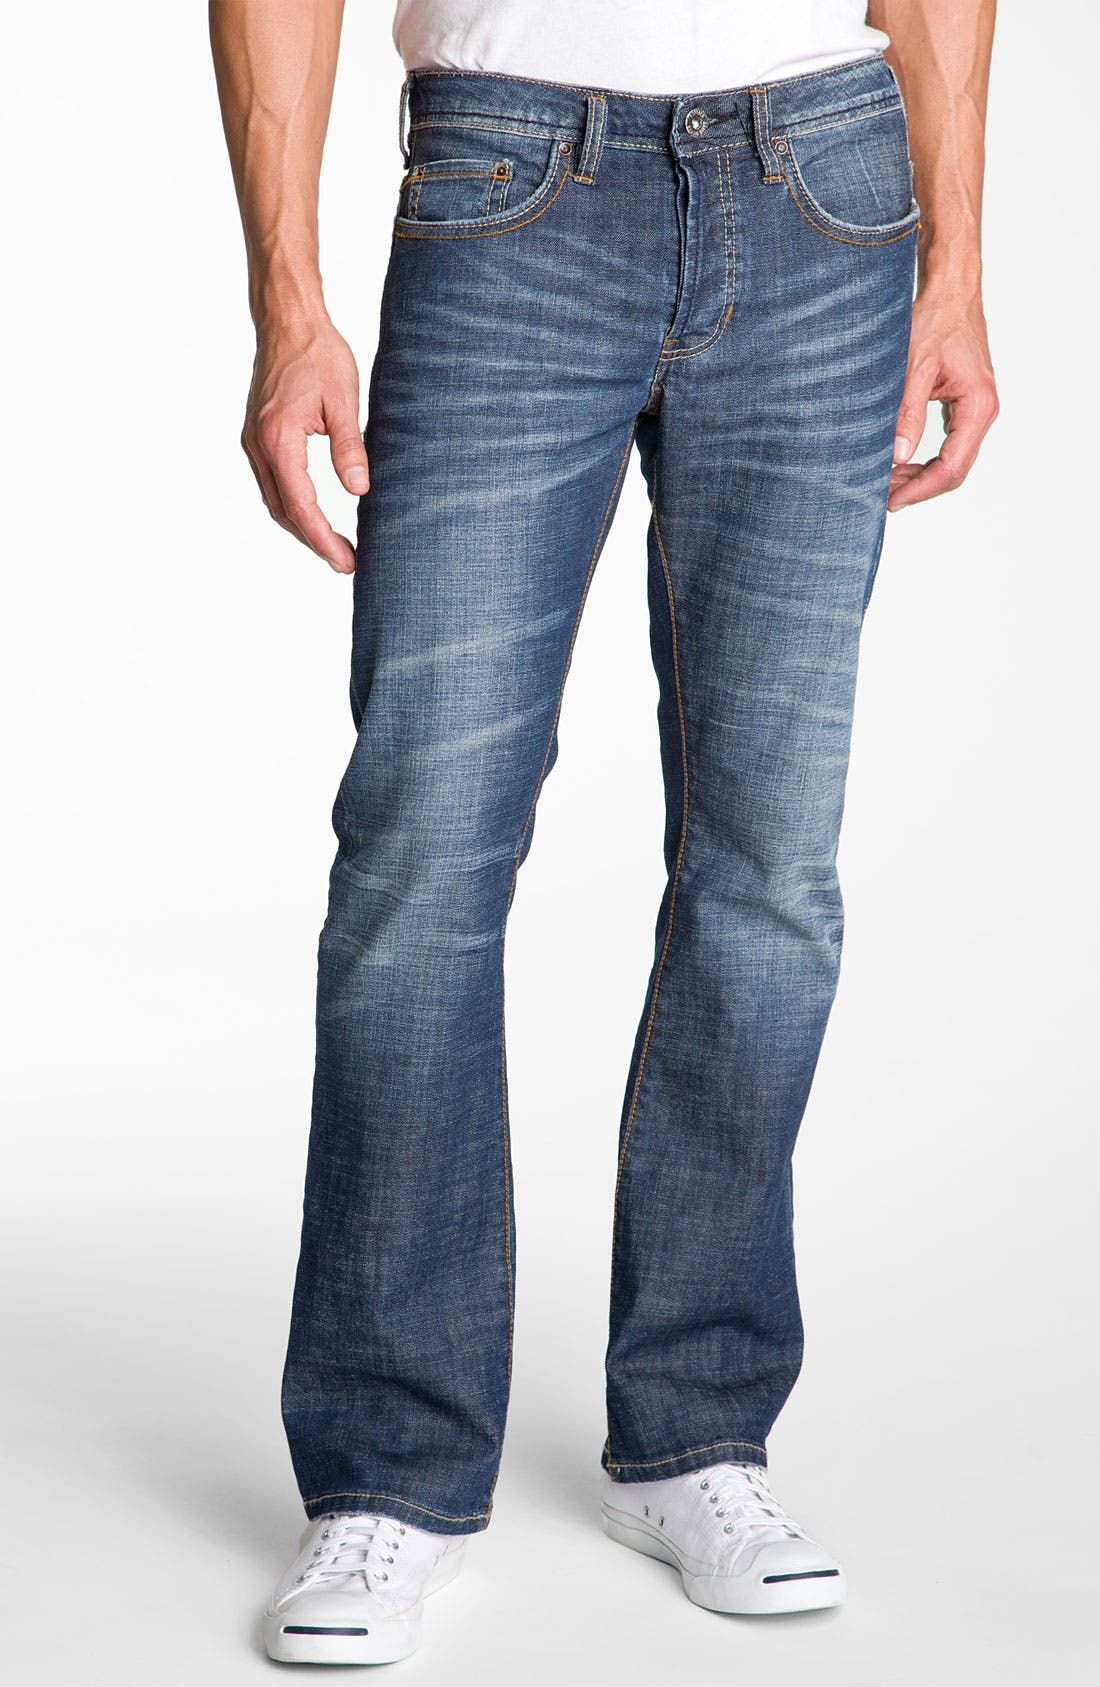 Main Image - Buffalo Jeans 'King' Bootcut Jeans (Distressed & Worn)